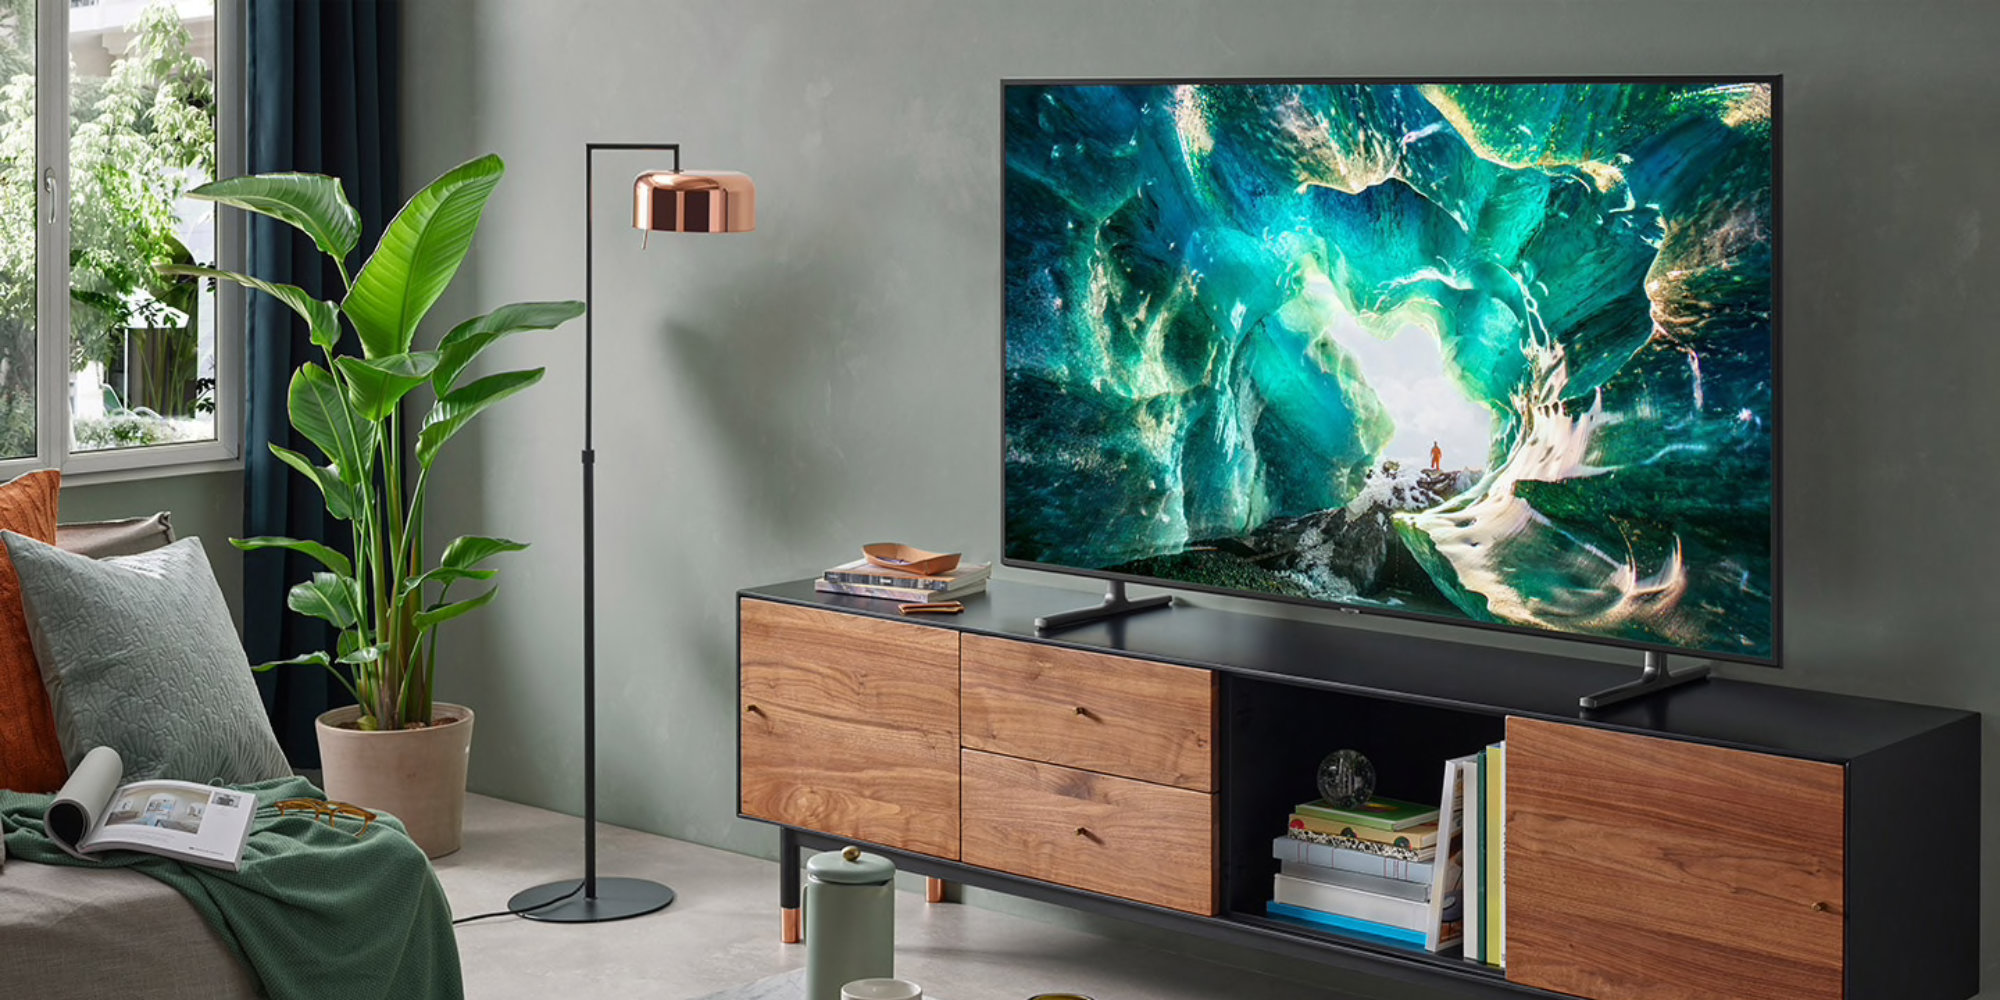 AirPlay 2 and iTunes support make Samsung's 65-inch 4K Smart TV compelling: $1,100 (All-time low)